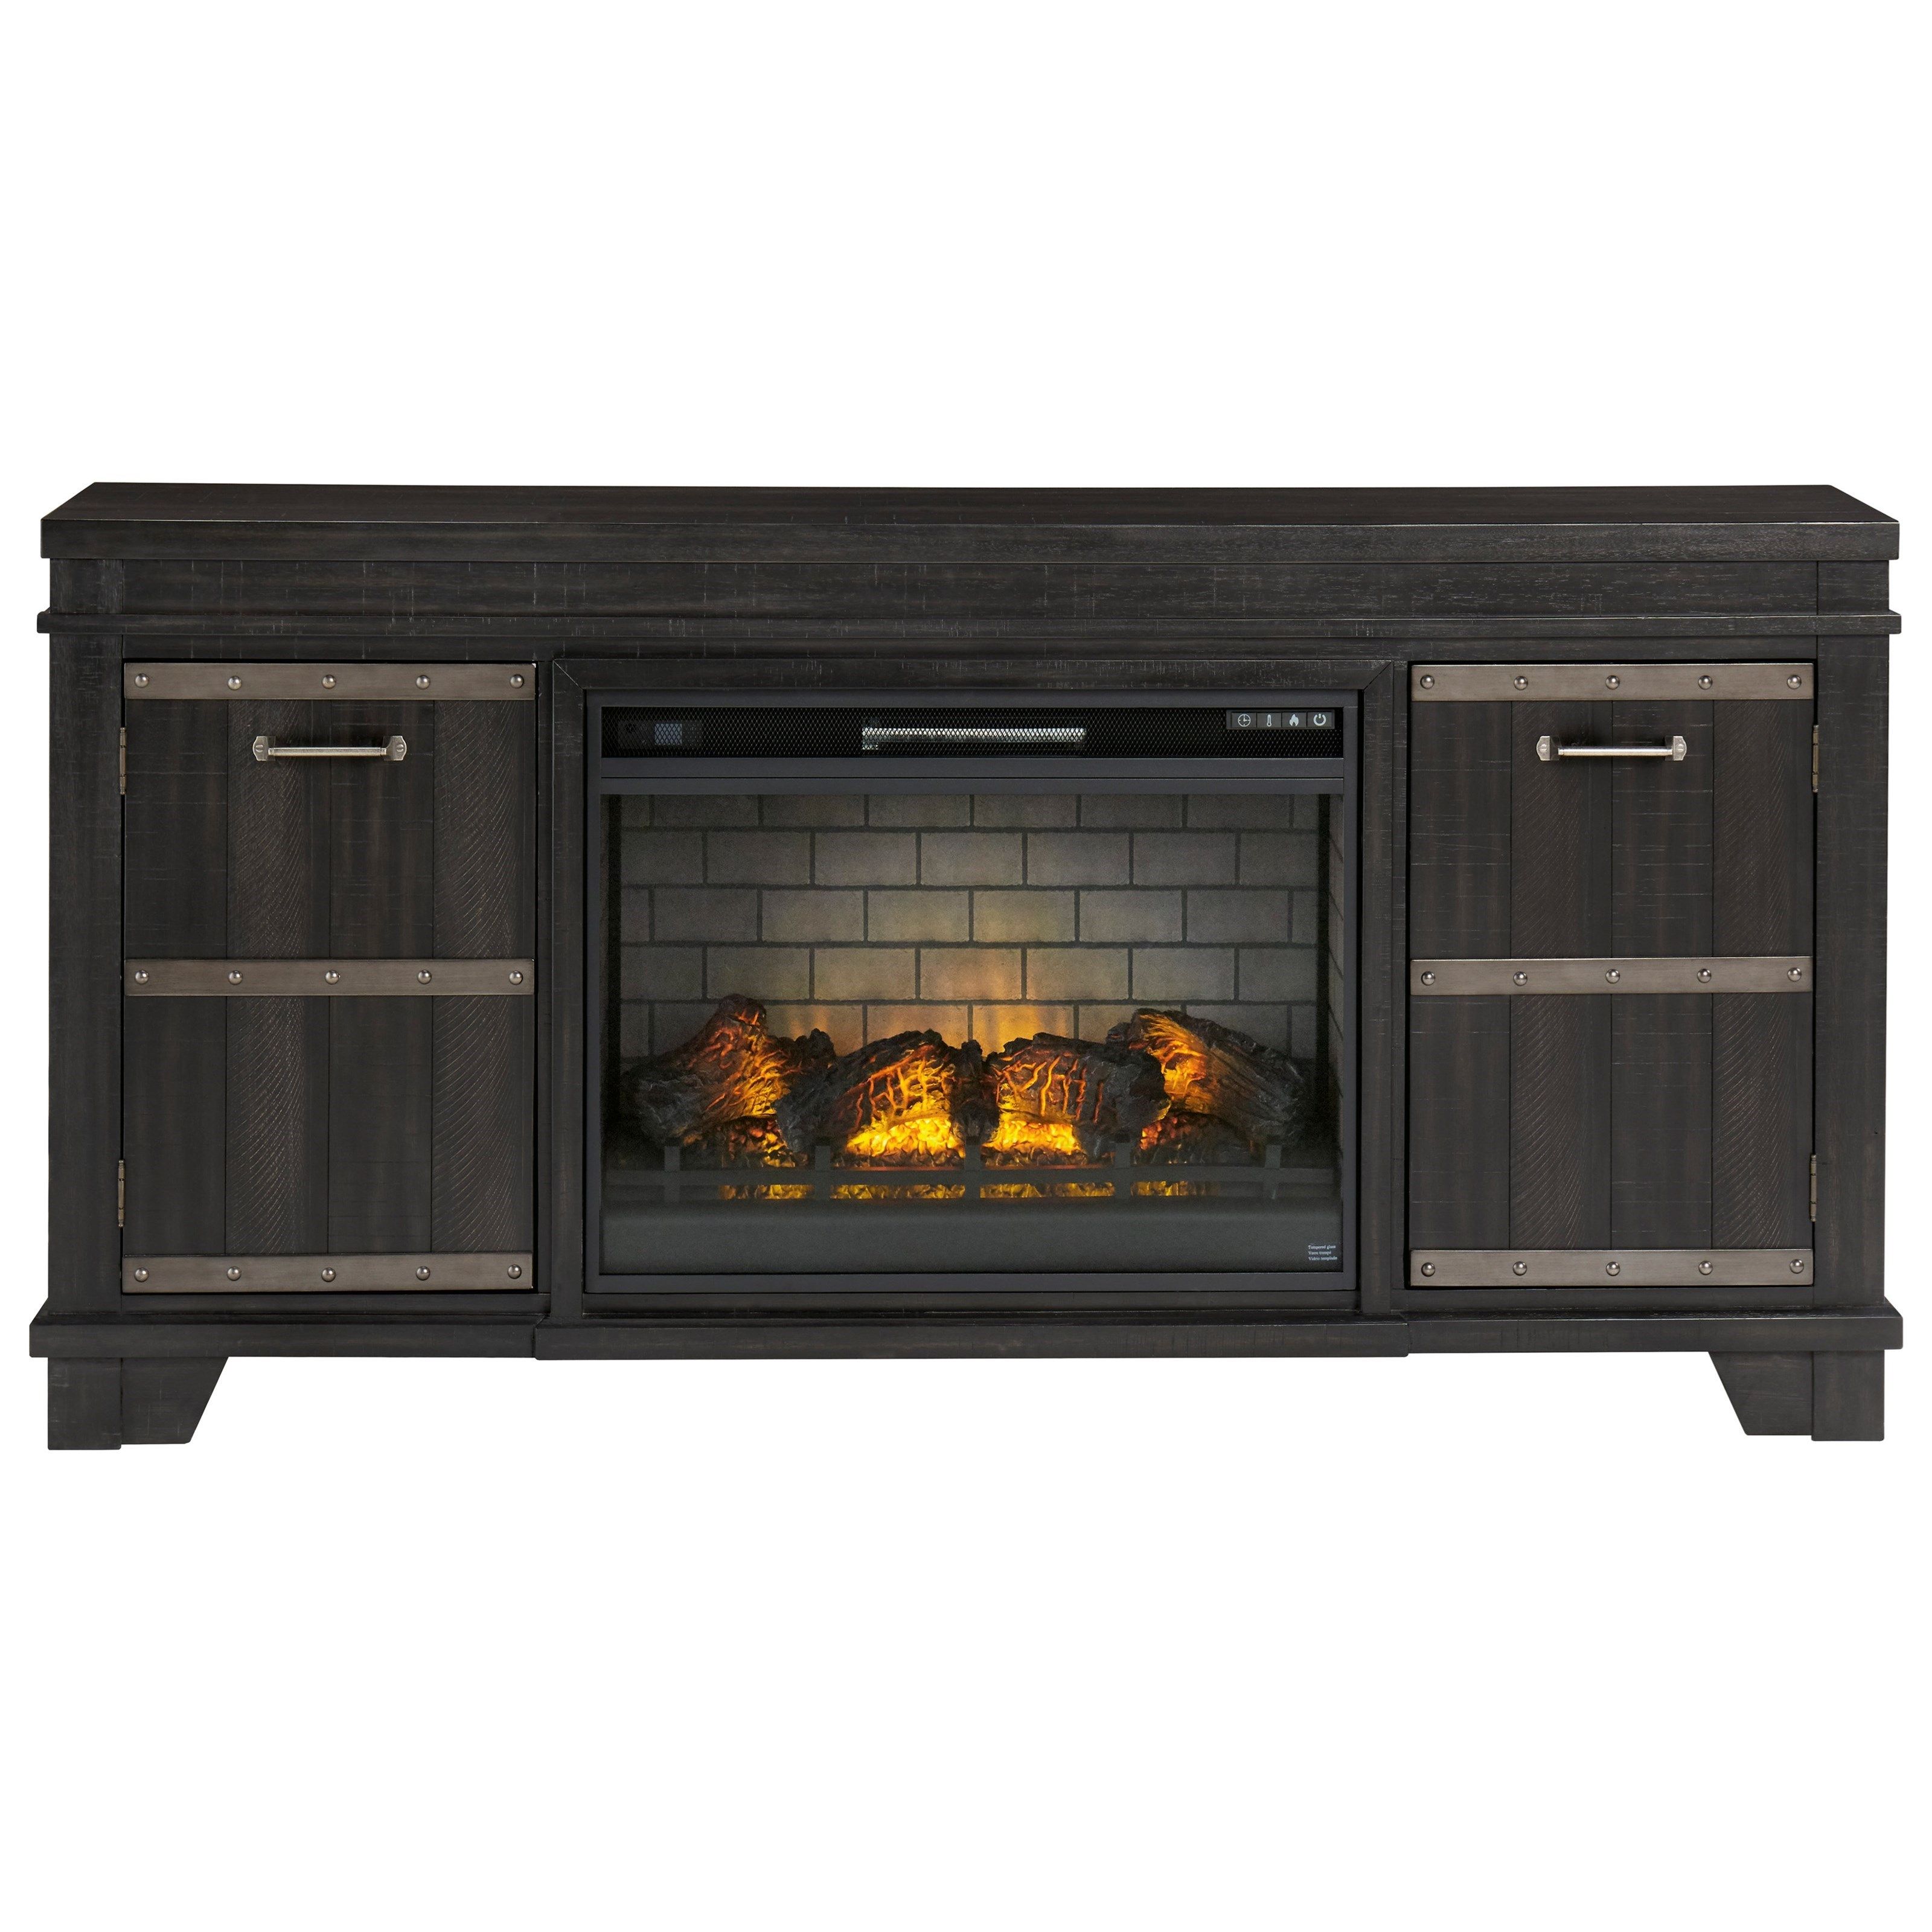 Norton Extra Large TV Stand with Fireplace Insert at Rotmans